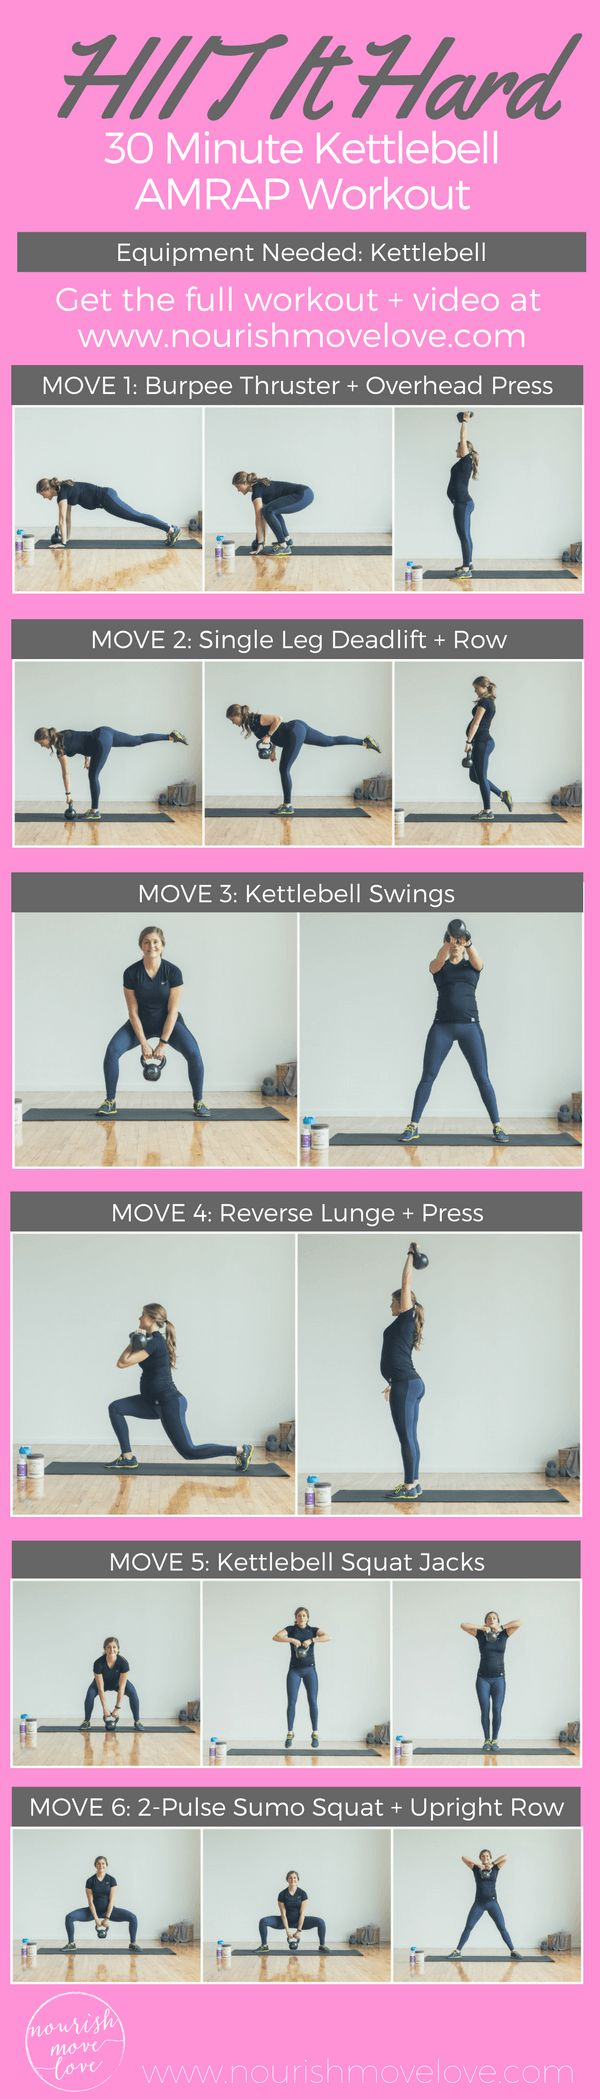 HIIT It Hard: 30-Minute Kettlebell AMRAP Workout | www.nourishmovelove.com